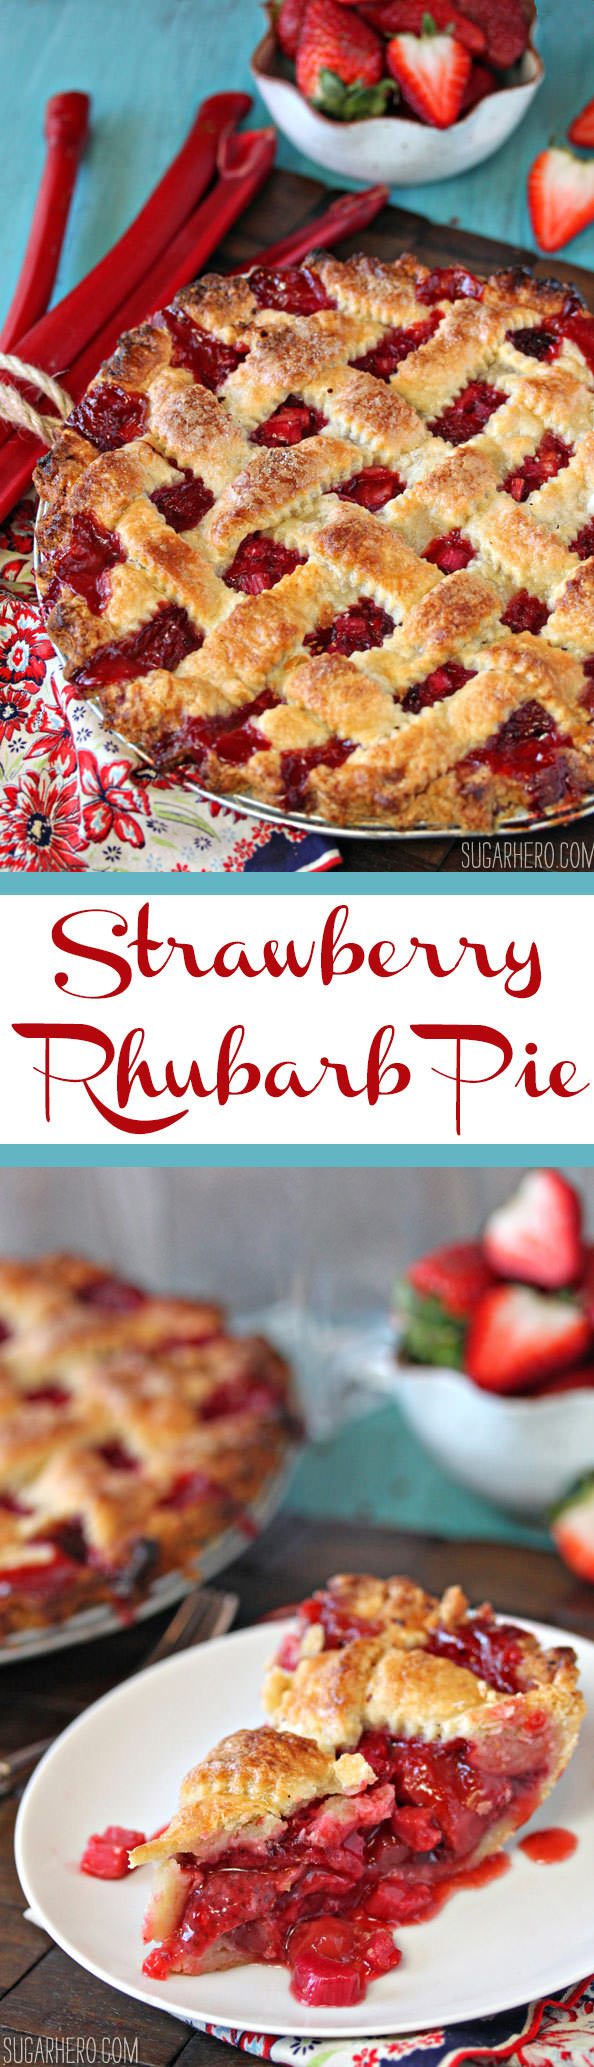 Strawberry Rhubarb Pie | From SugarHero.com